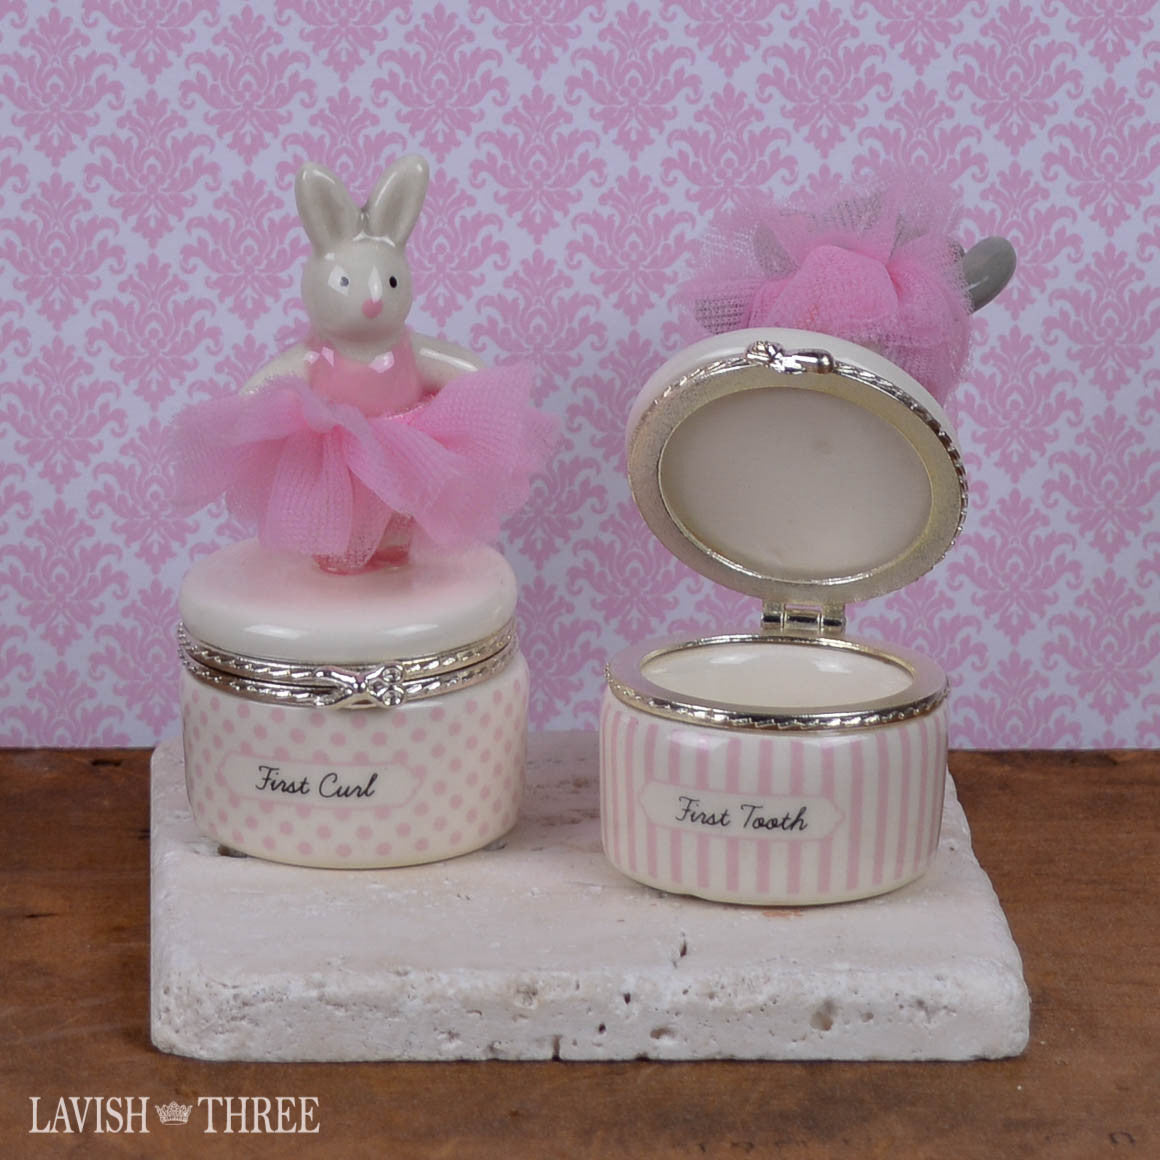 Little Princess' first tooth and curl ceramic baby keepsake